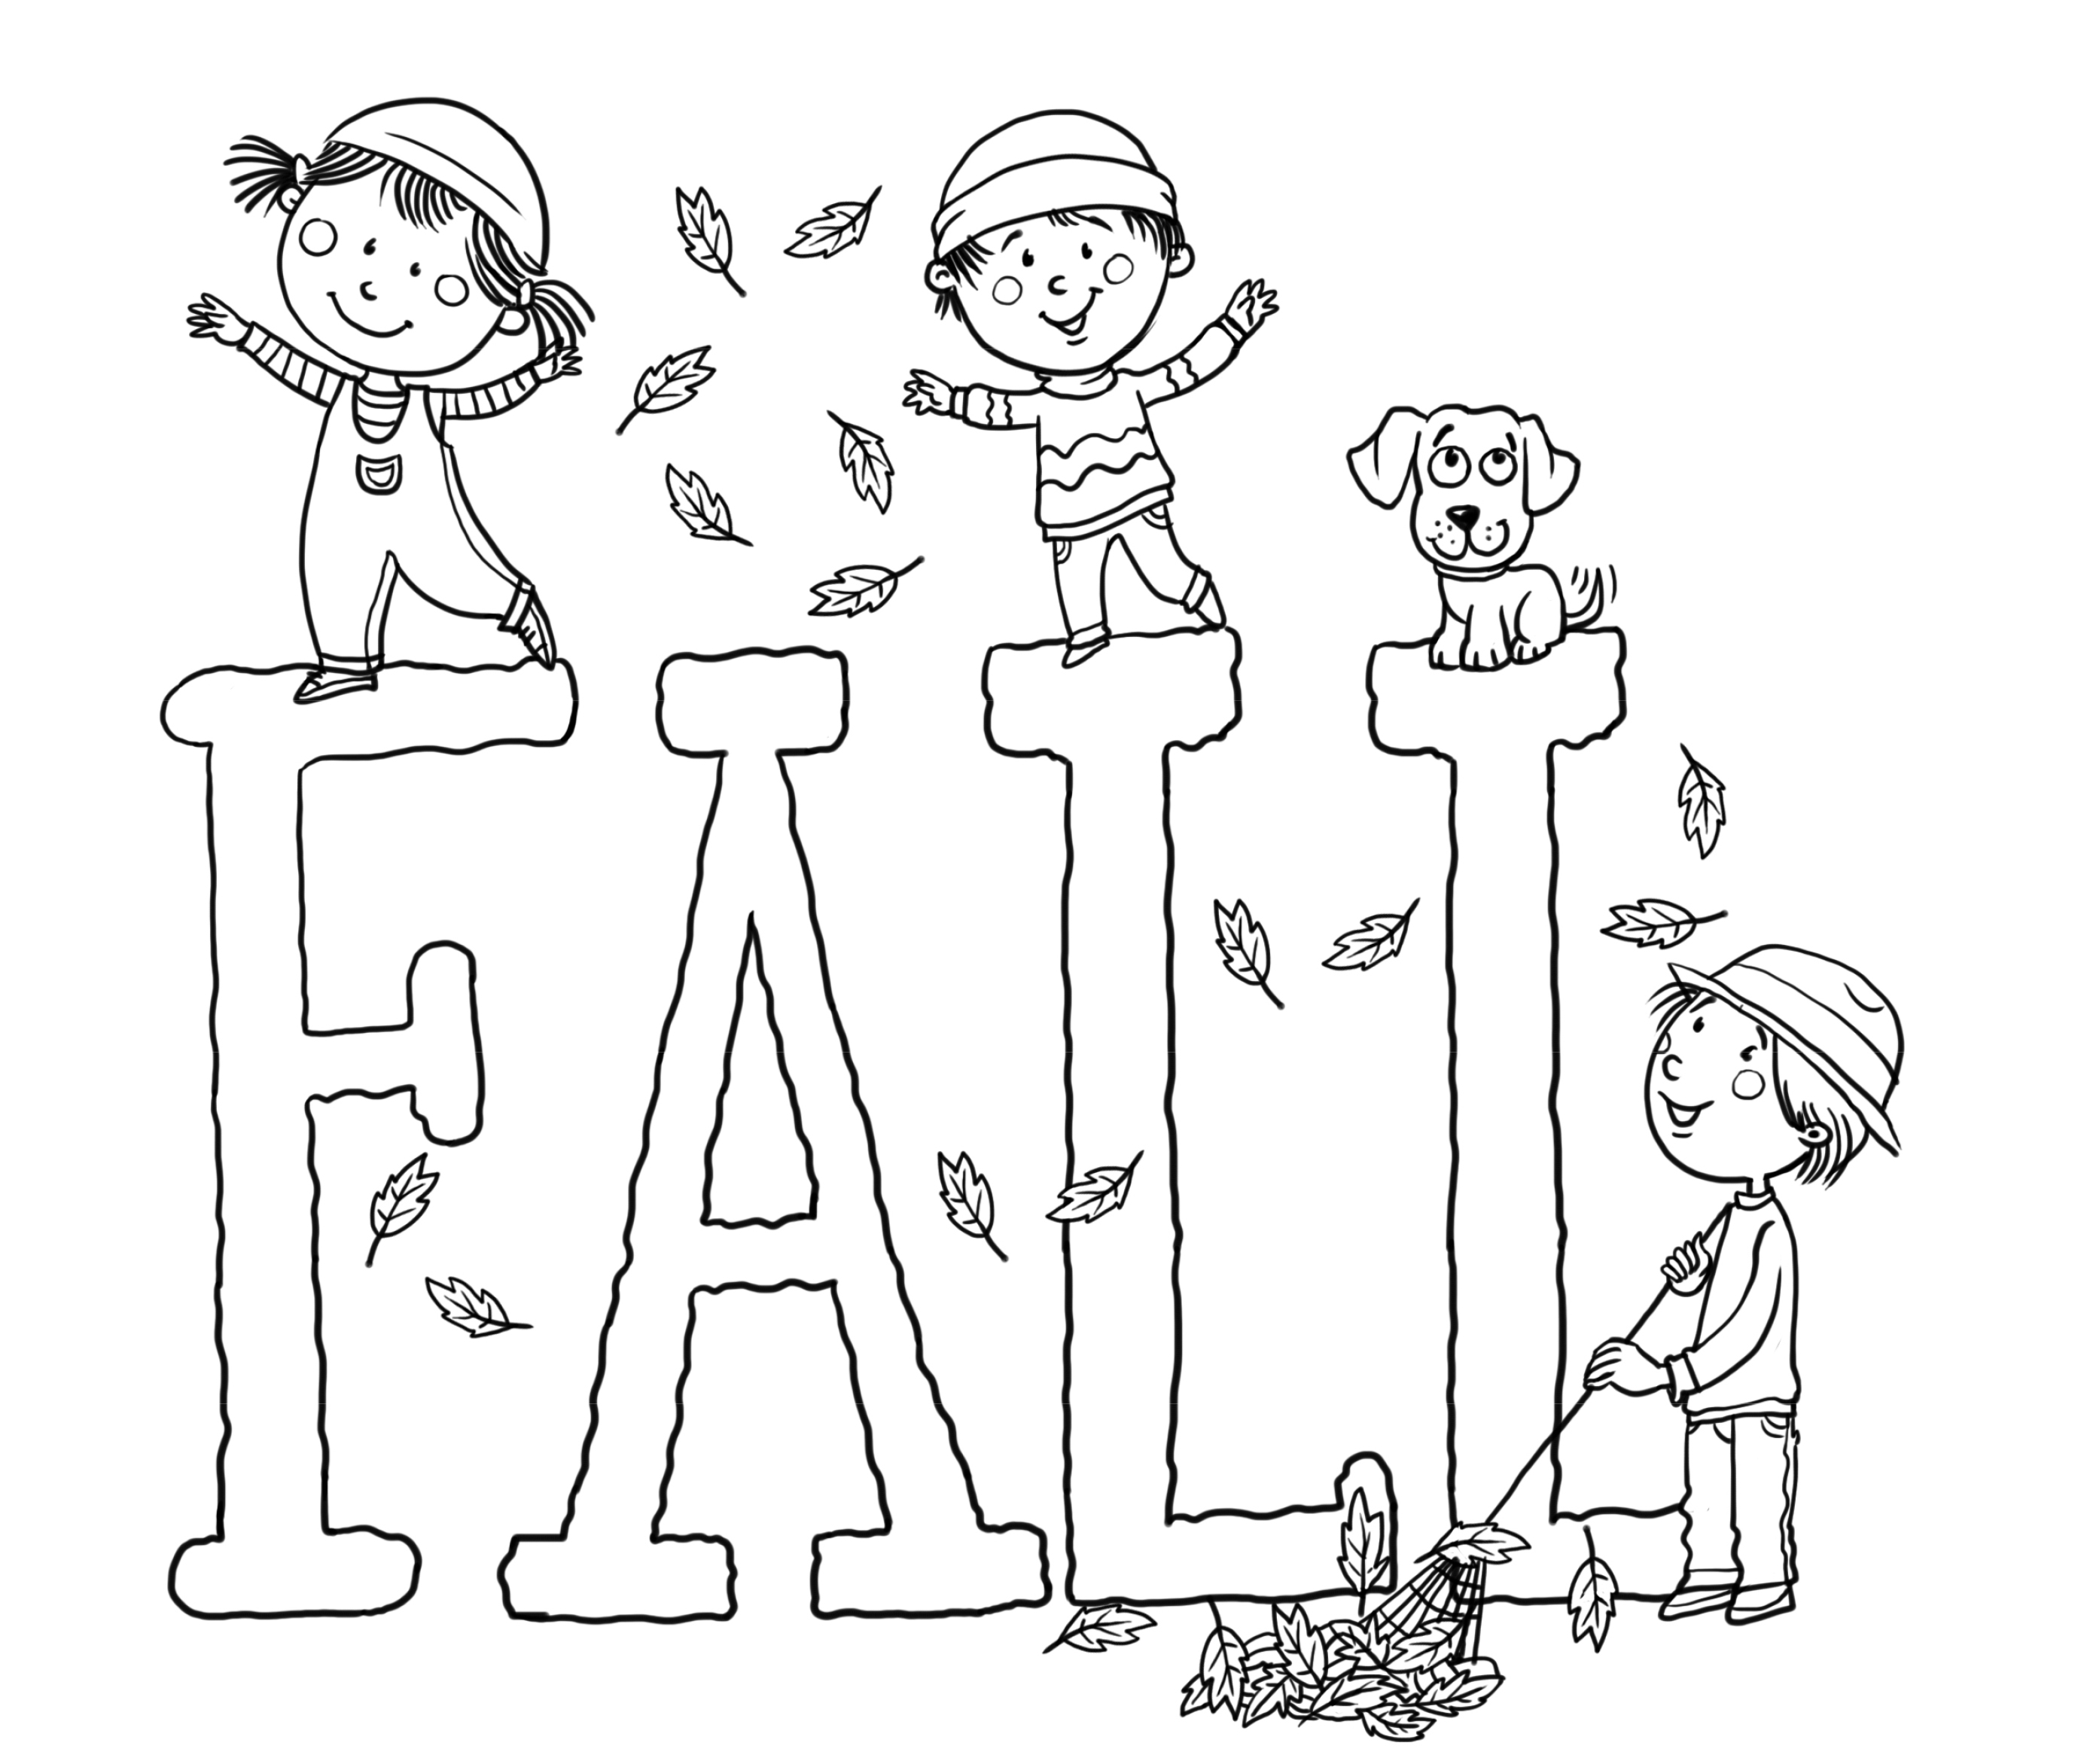 Free printable coloring pages with words - Color The Picture And The Word Fall In This Fun Fall Coloring Page For Kids Free Fall Coloring Printables